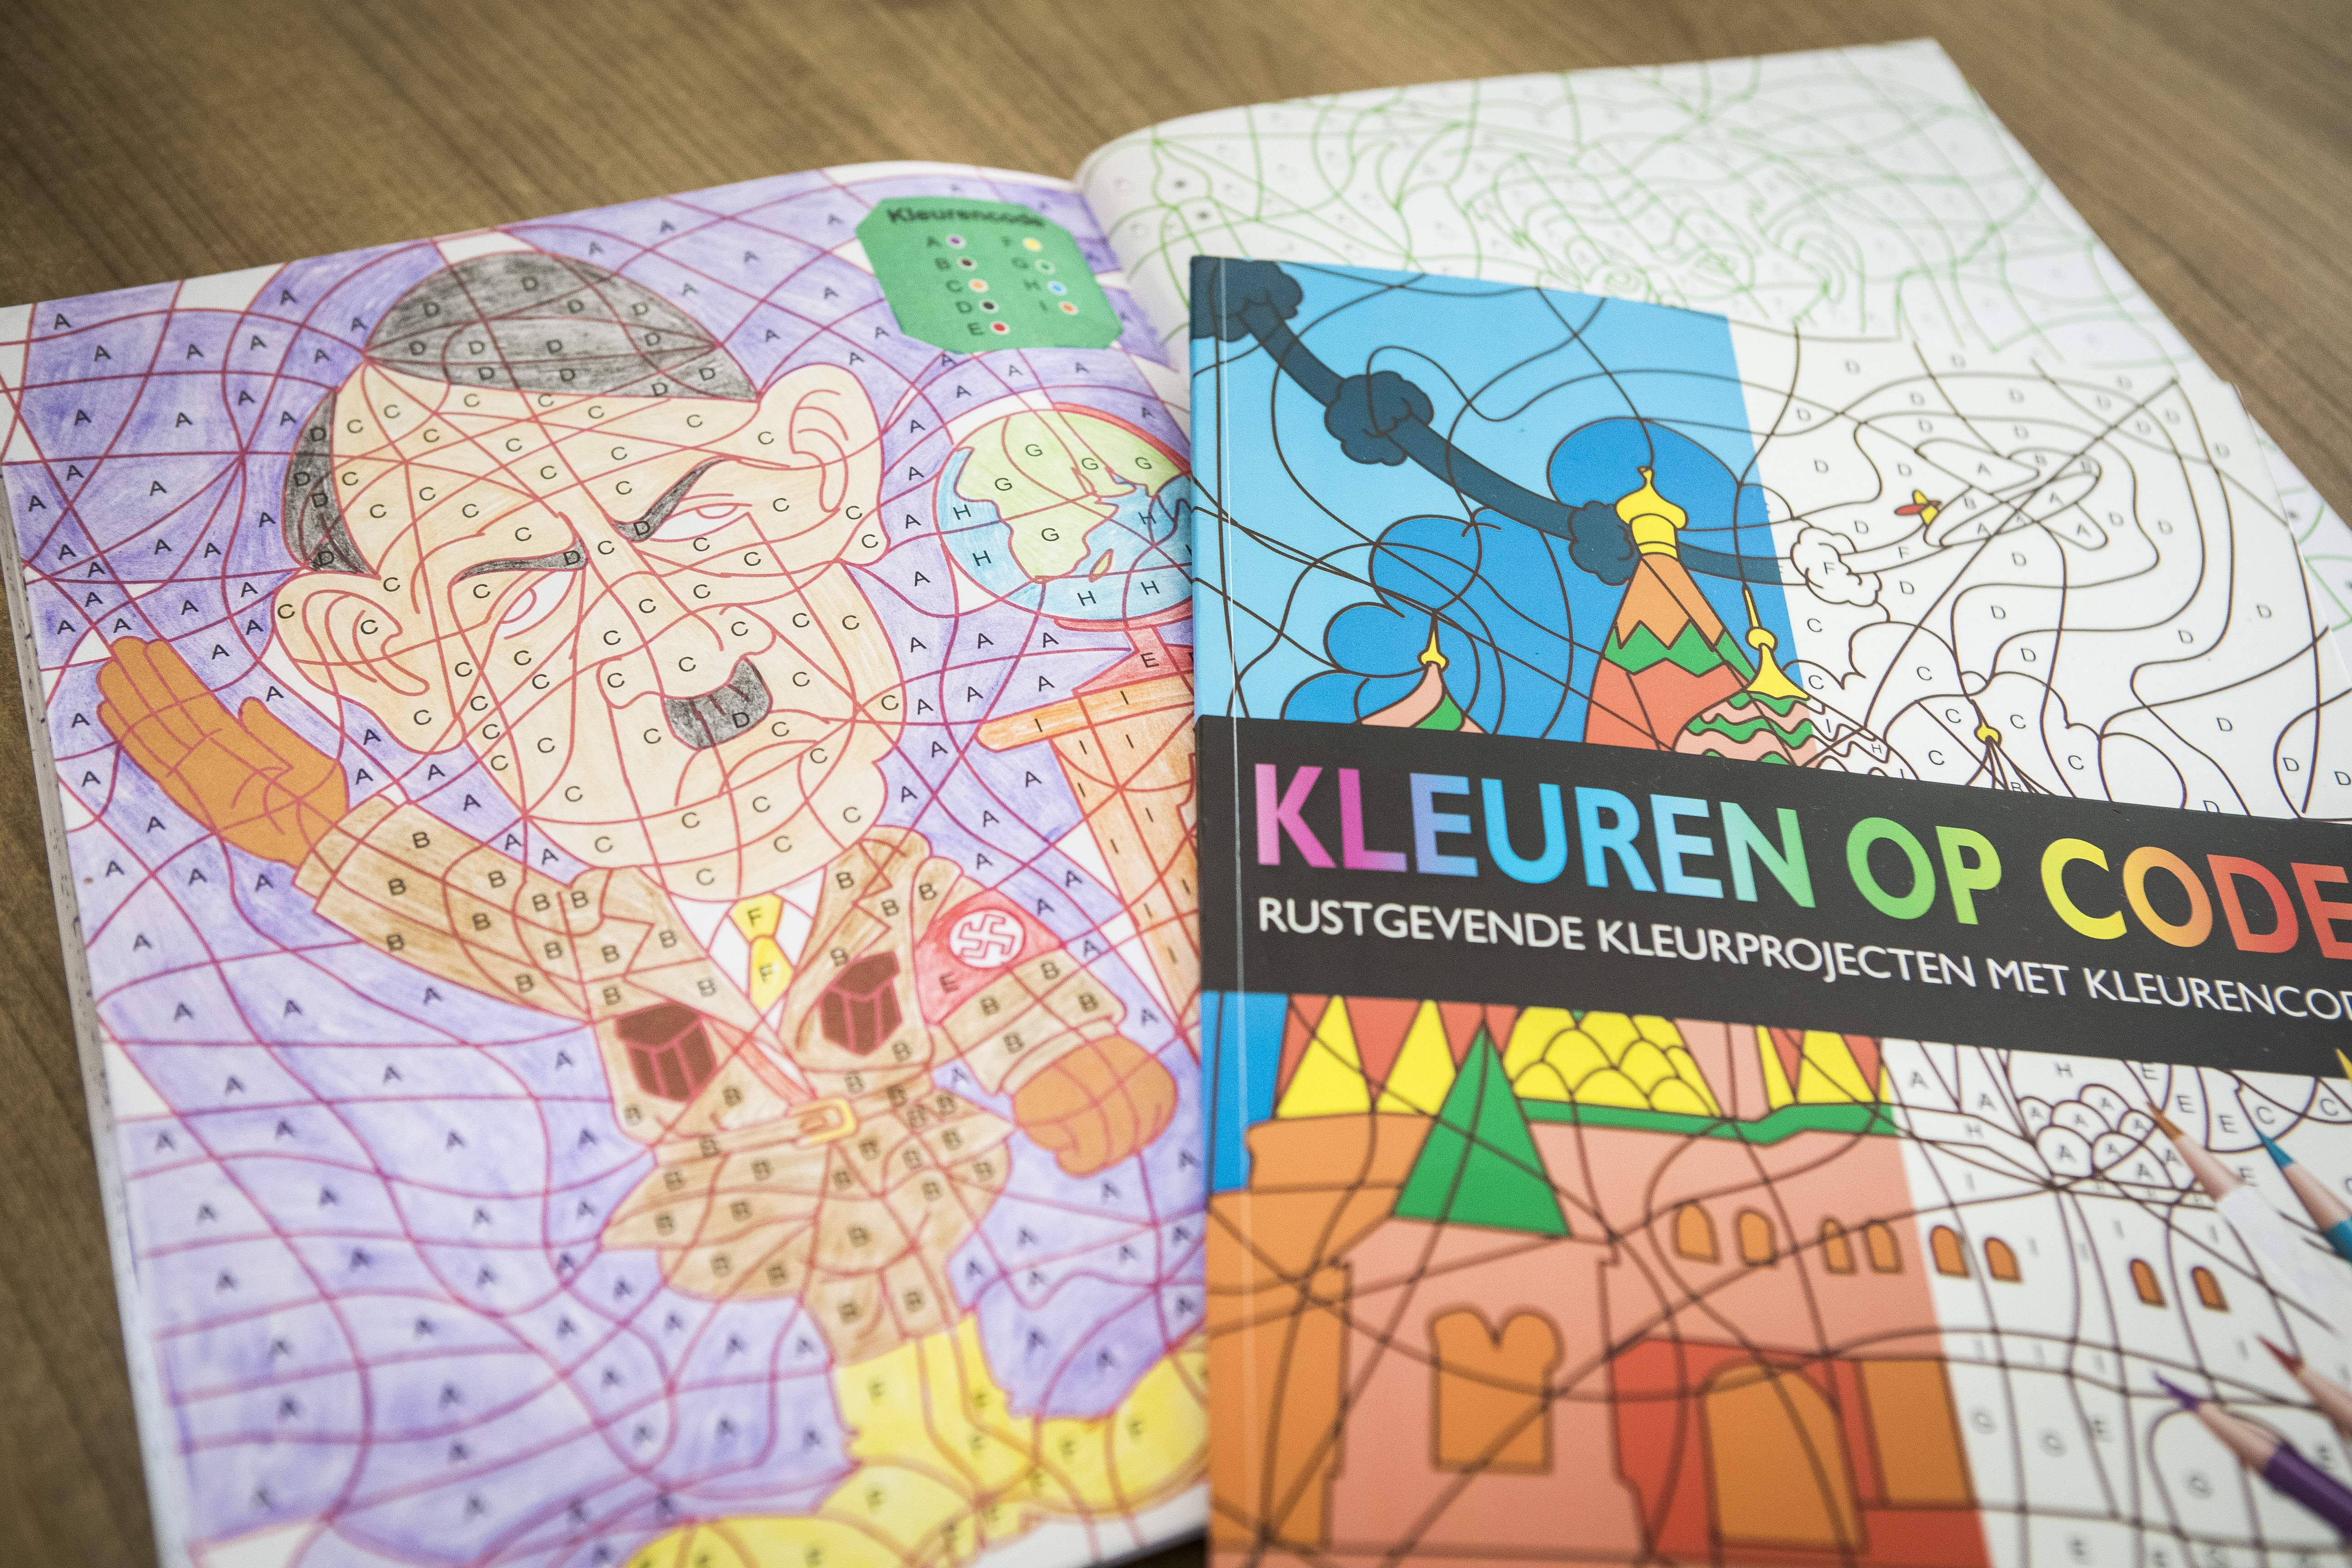 A coloring book with an image of Adolf Hitler bought at the Dutch store Kruidvat in Pijnacker, the Netherlands, on April 5, 2017.